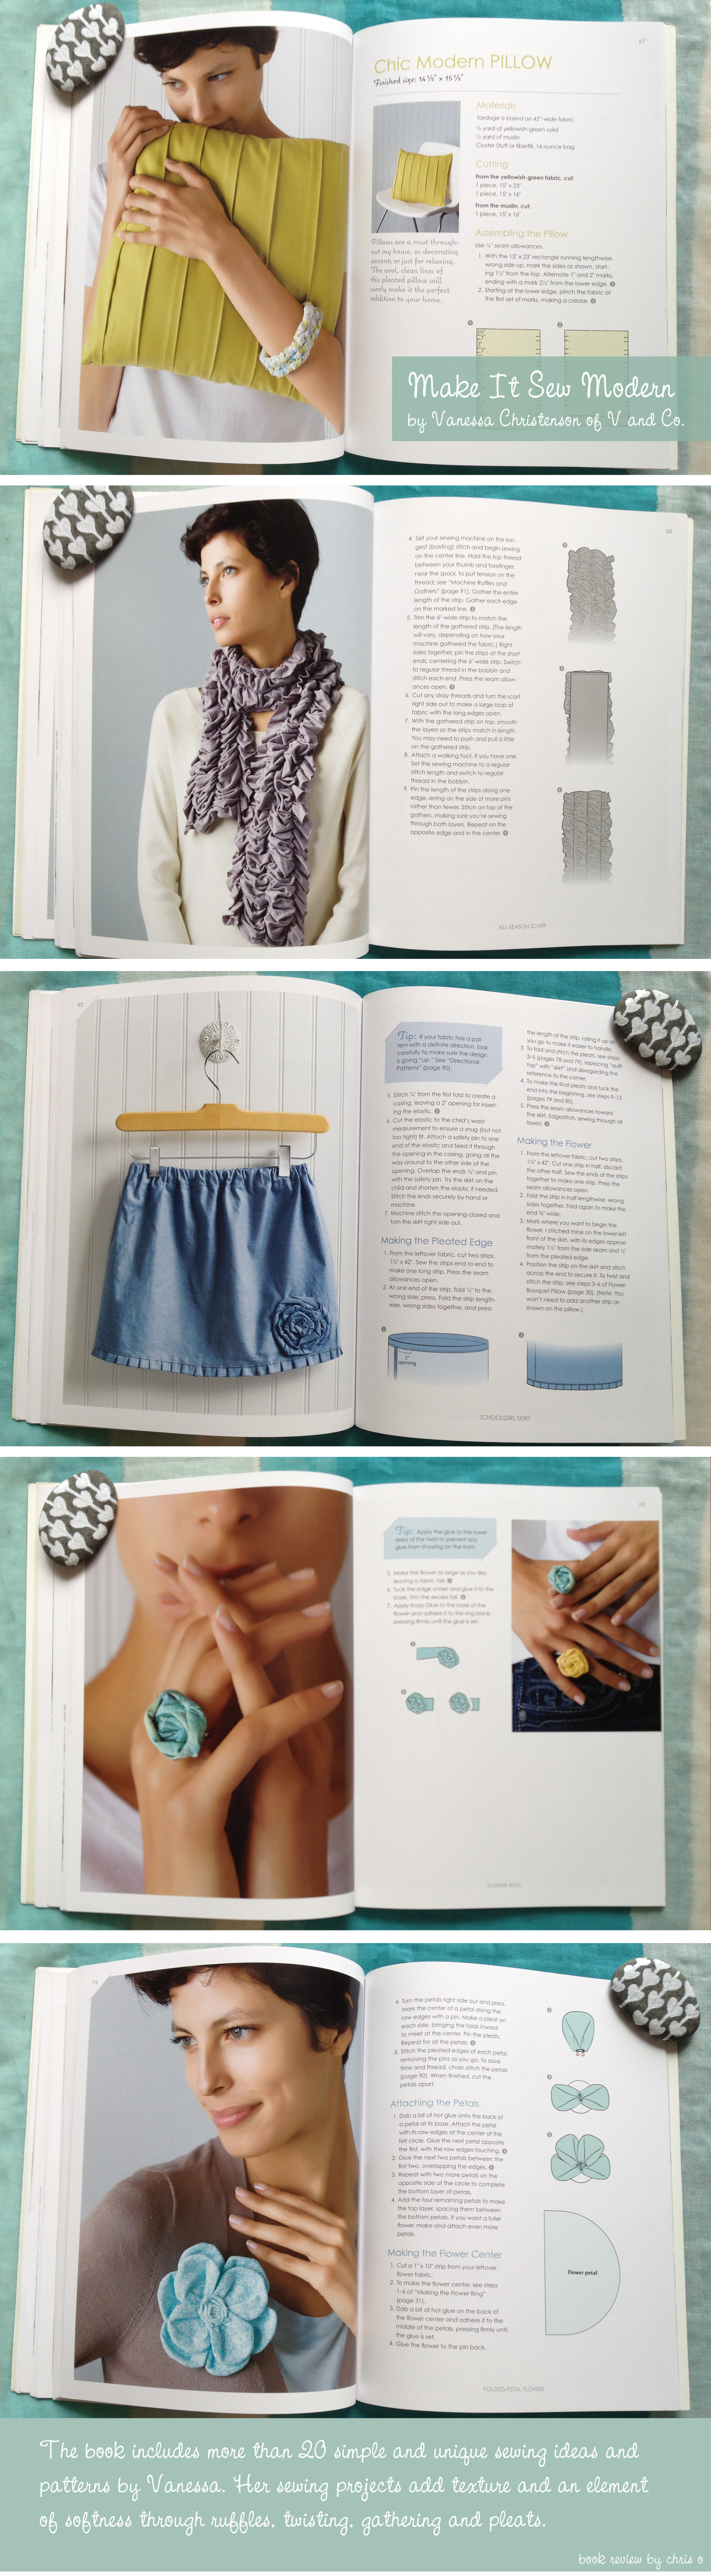 Make It Sew Modern book review by Chris Olson